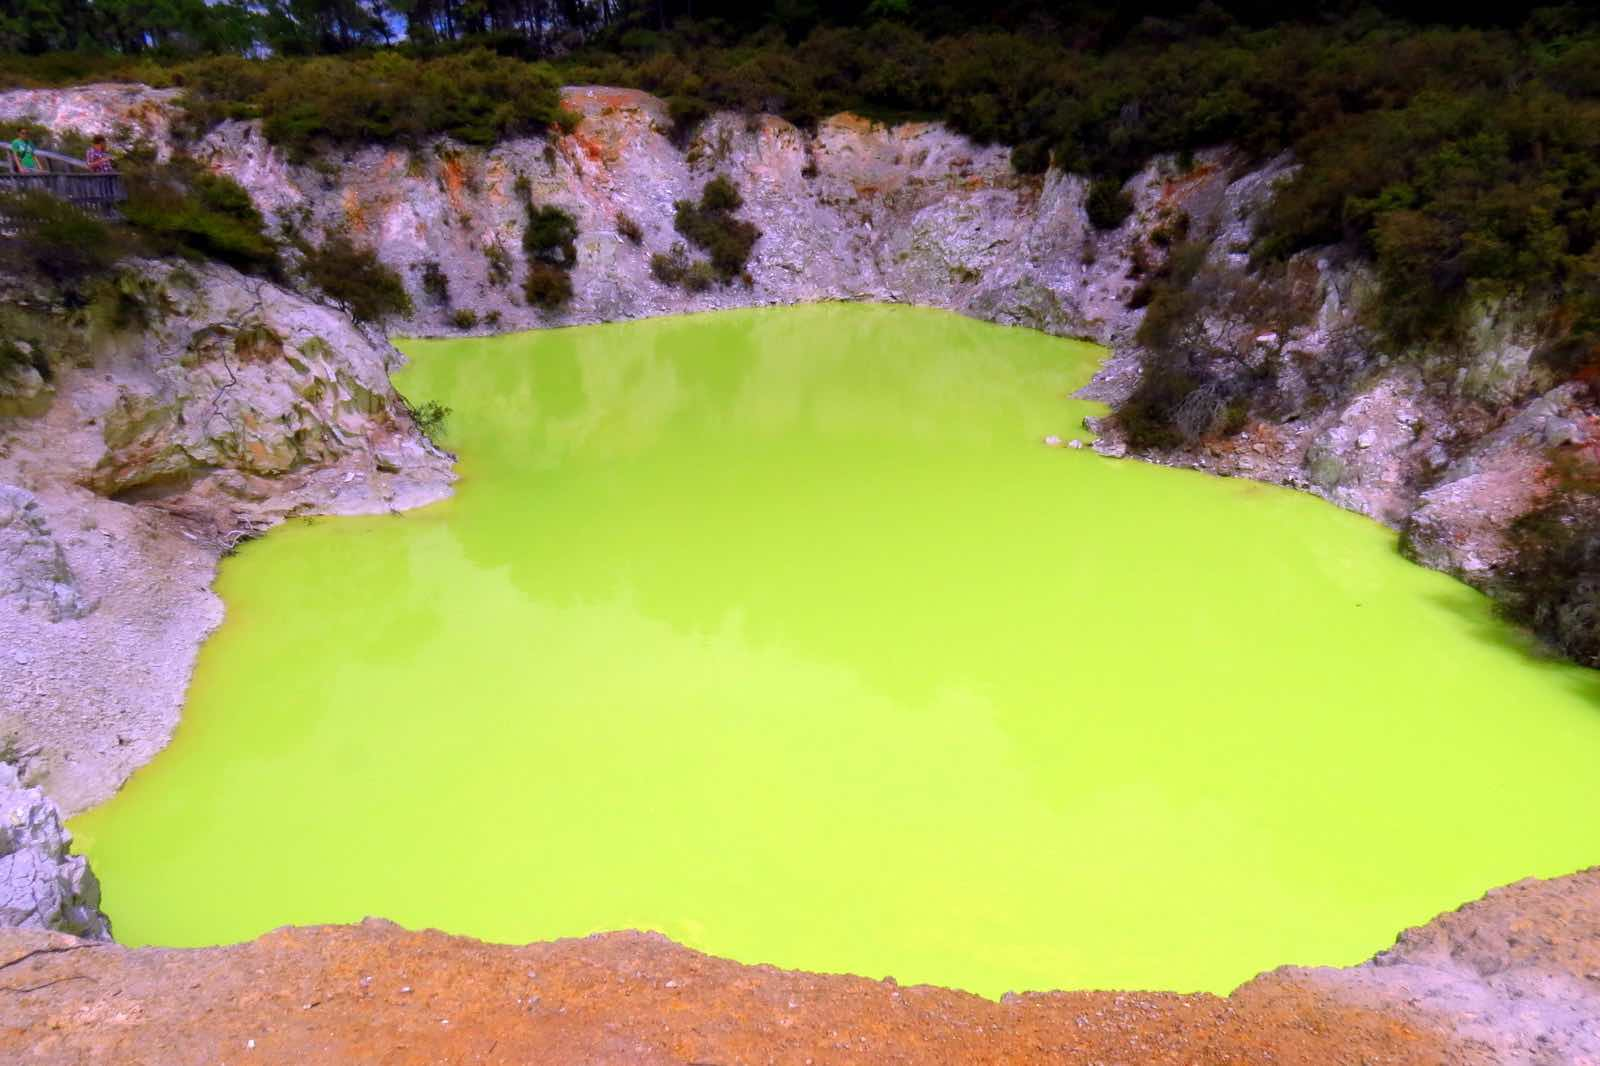 Colourful yet toxic water pond